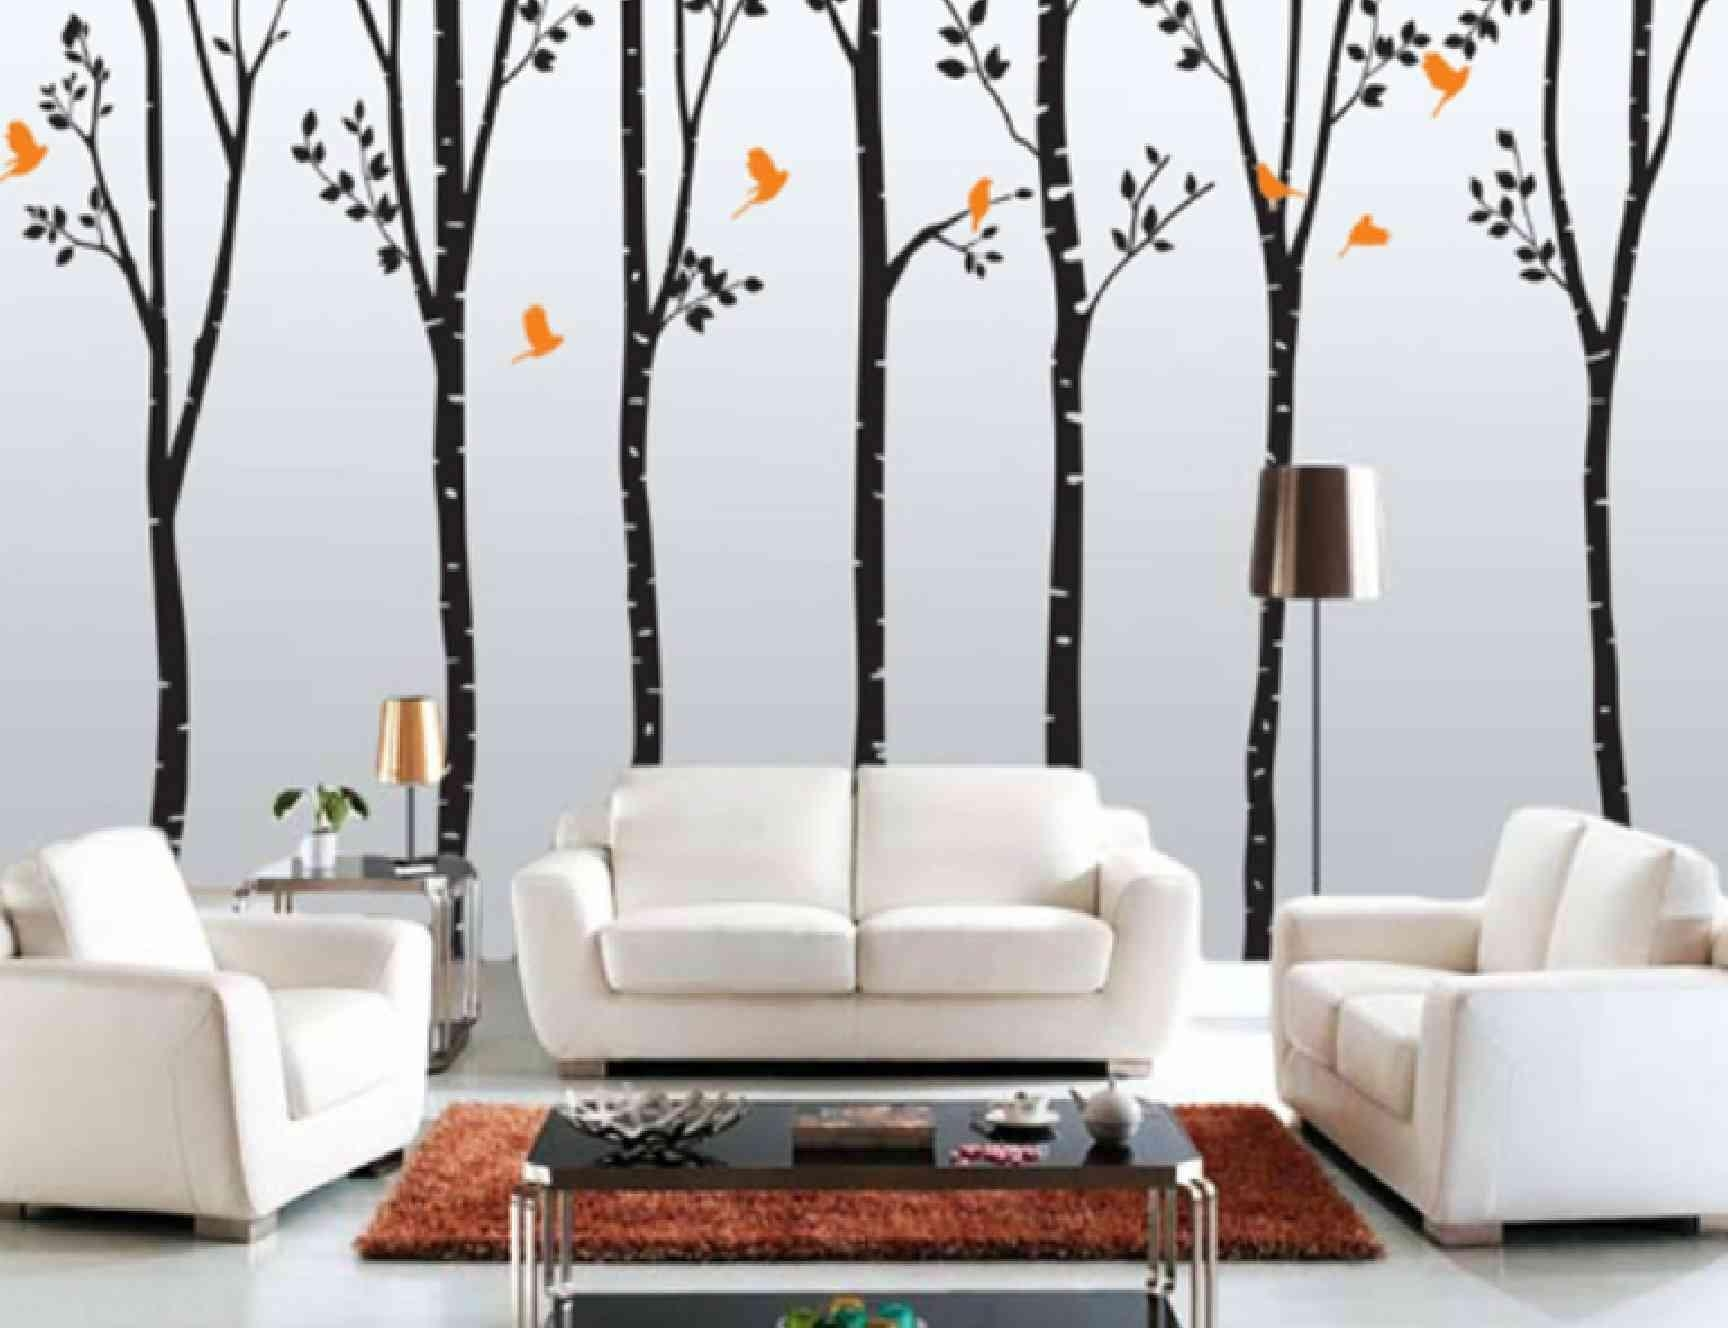 Picturesque Living Room Wall Decor Modern Designs | Inspiration Inside Wall Pictures For Living Room (Image 15 of 20)